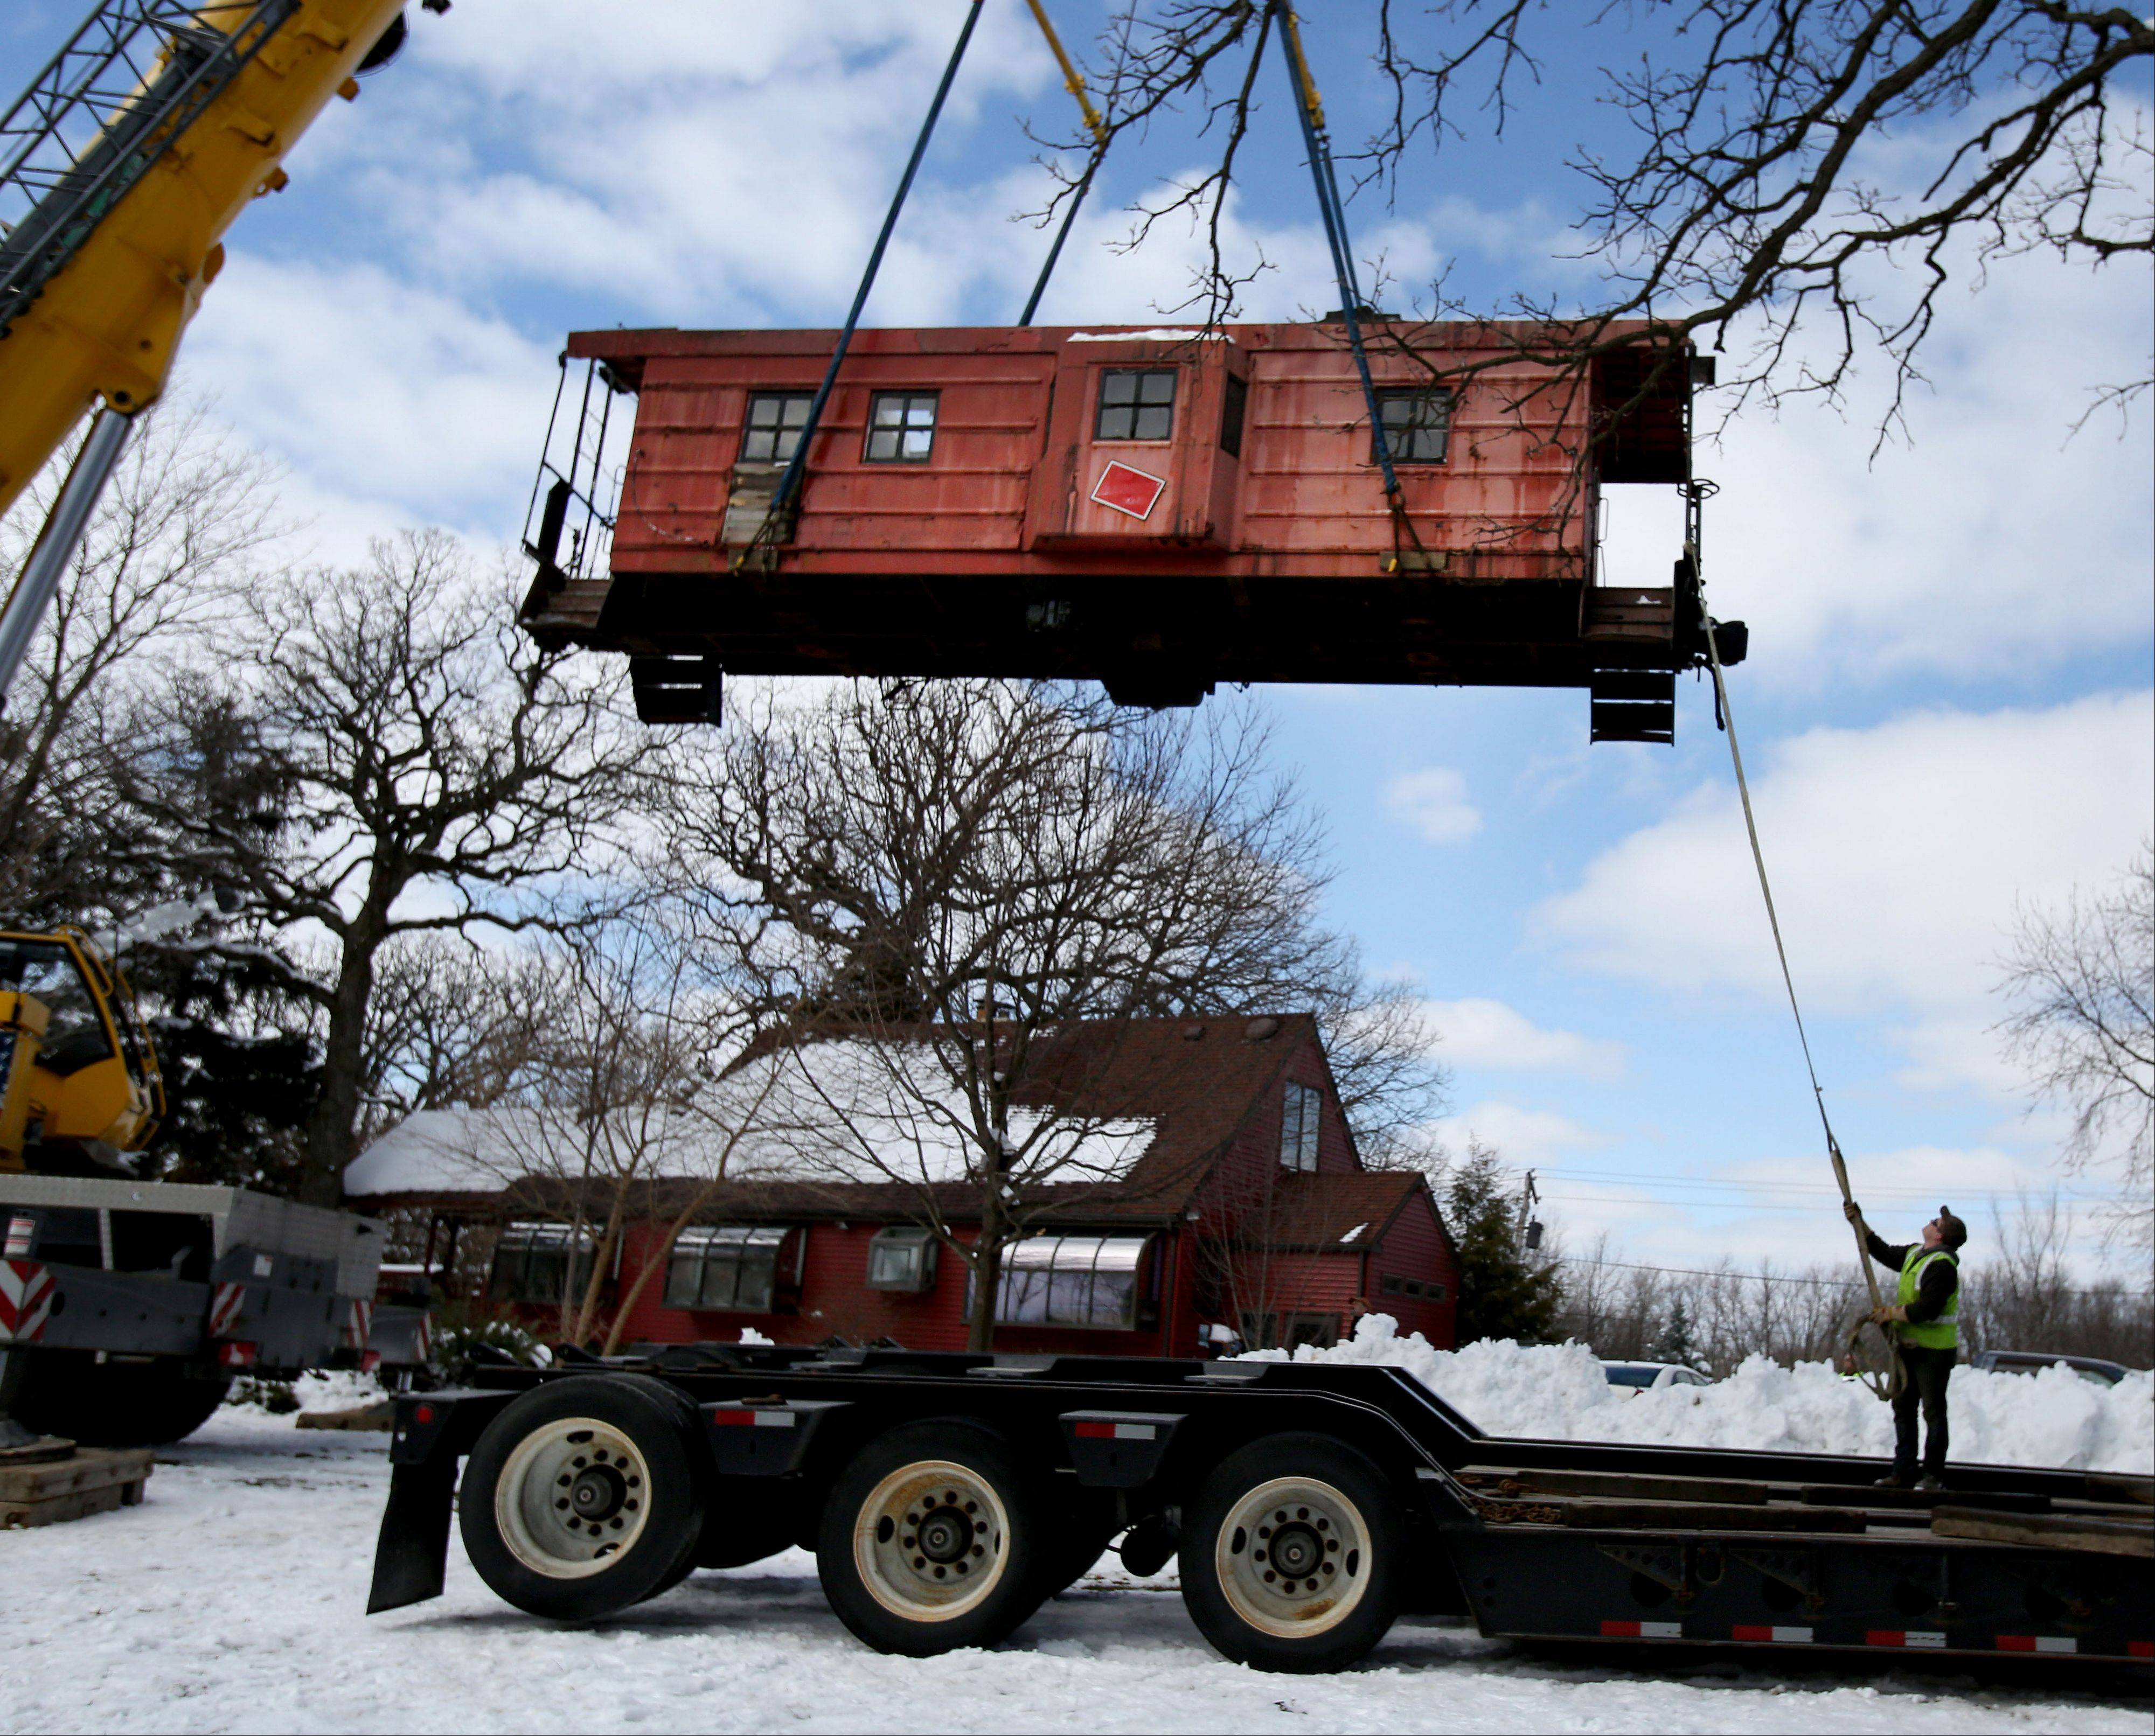 A railroad caboose was placed on a flatbed truck Thursday in Itasca, moving it from a residence along Bloomingdale Road to its new home at the Itasca Historical Depot Museum.